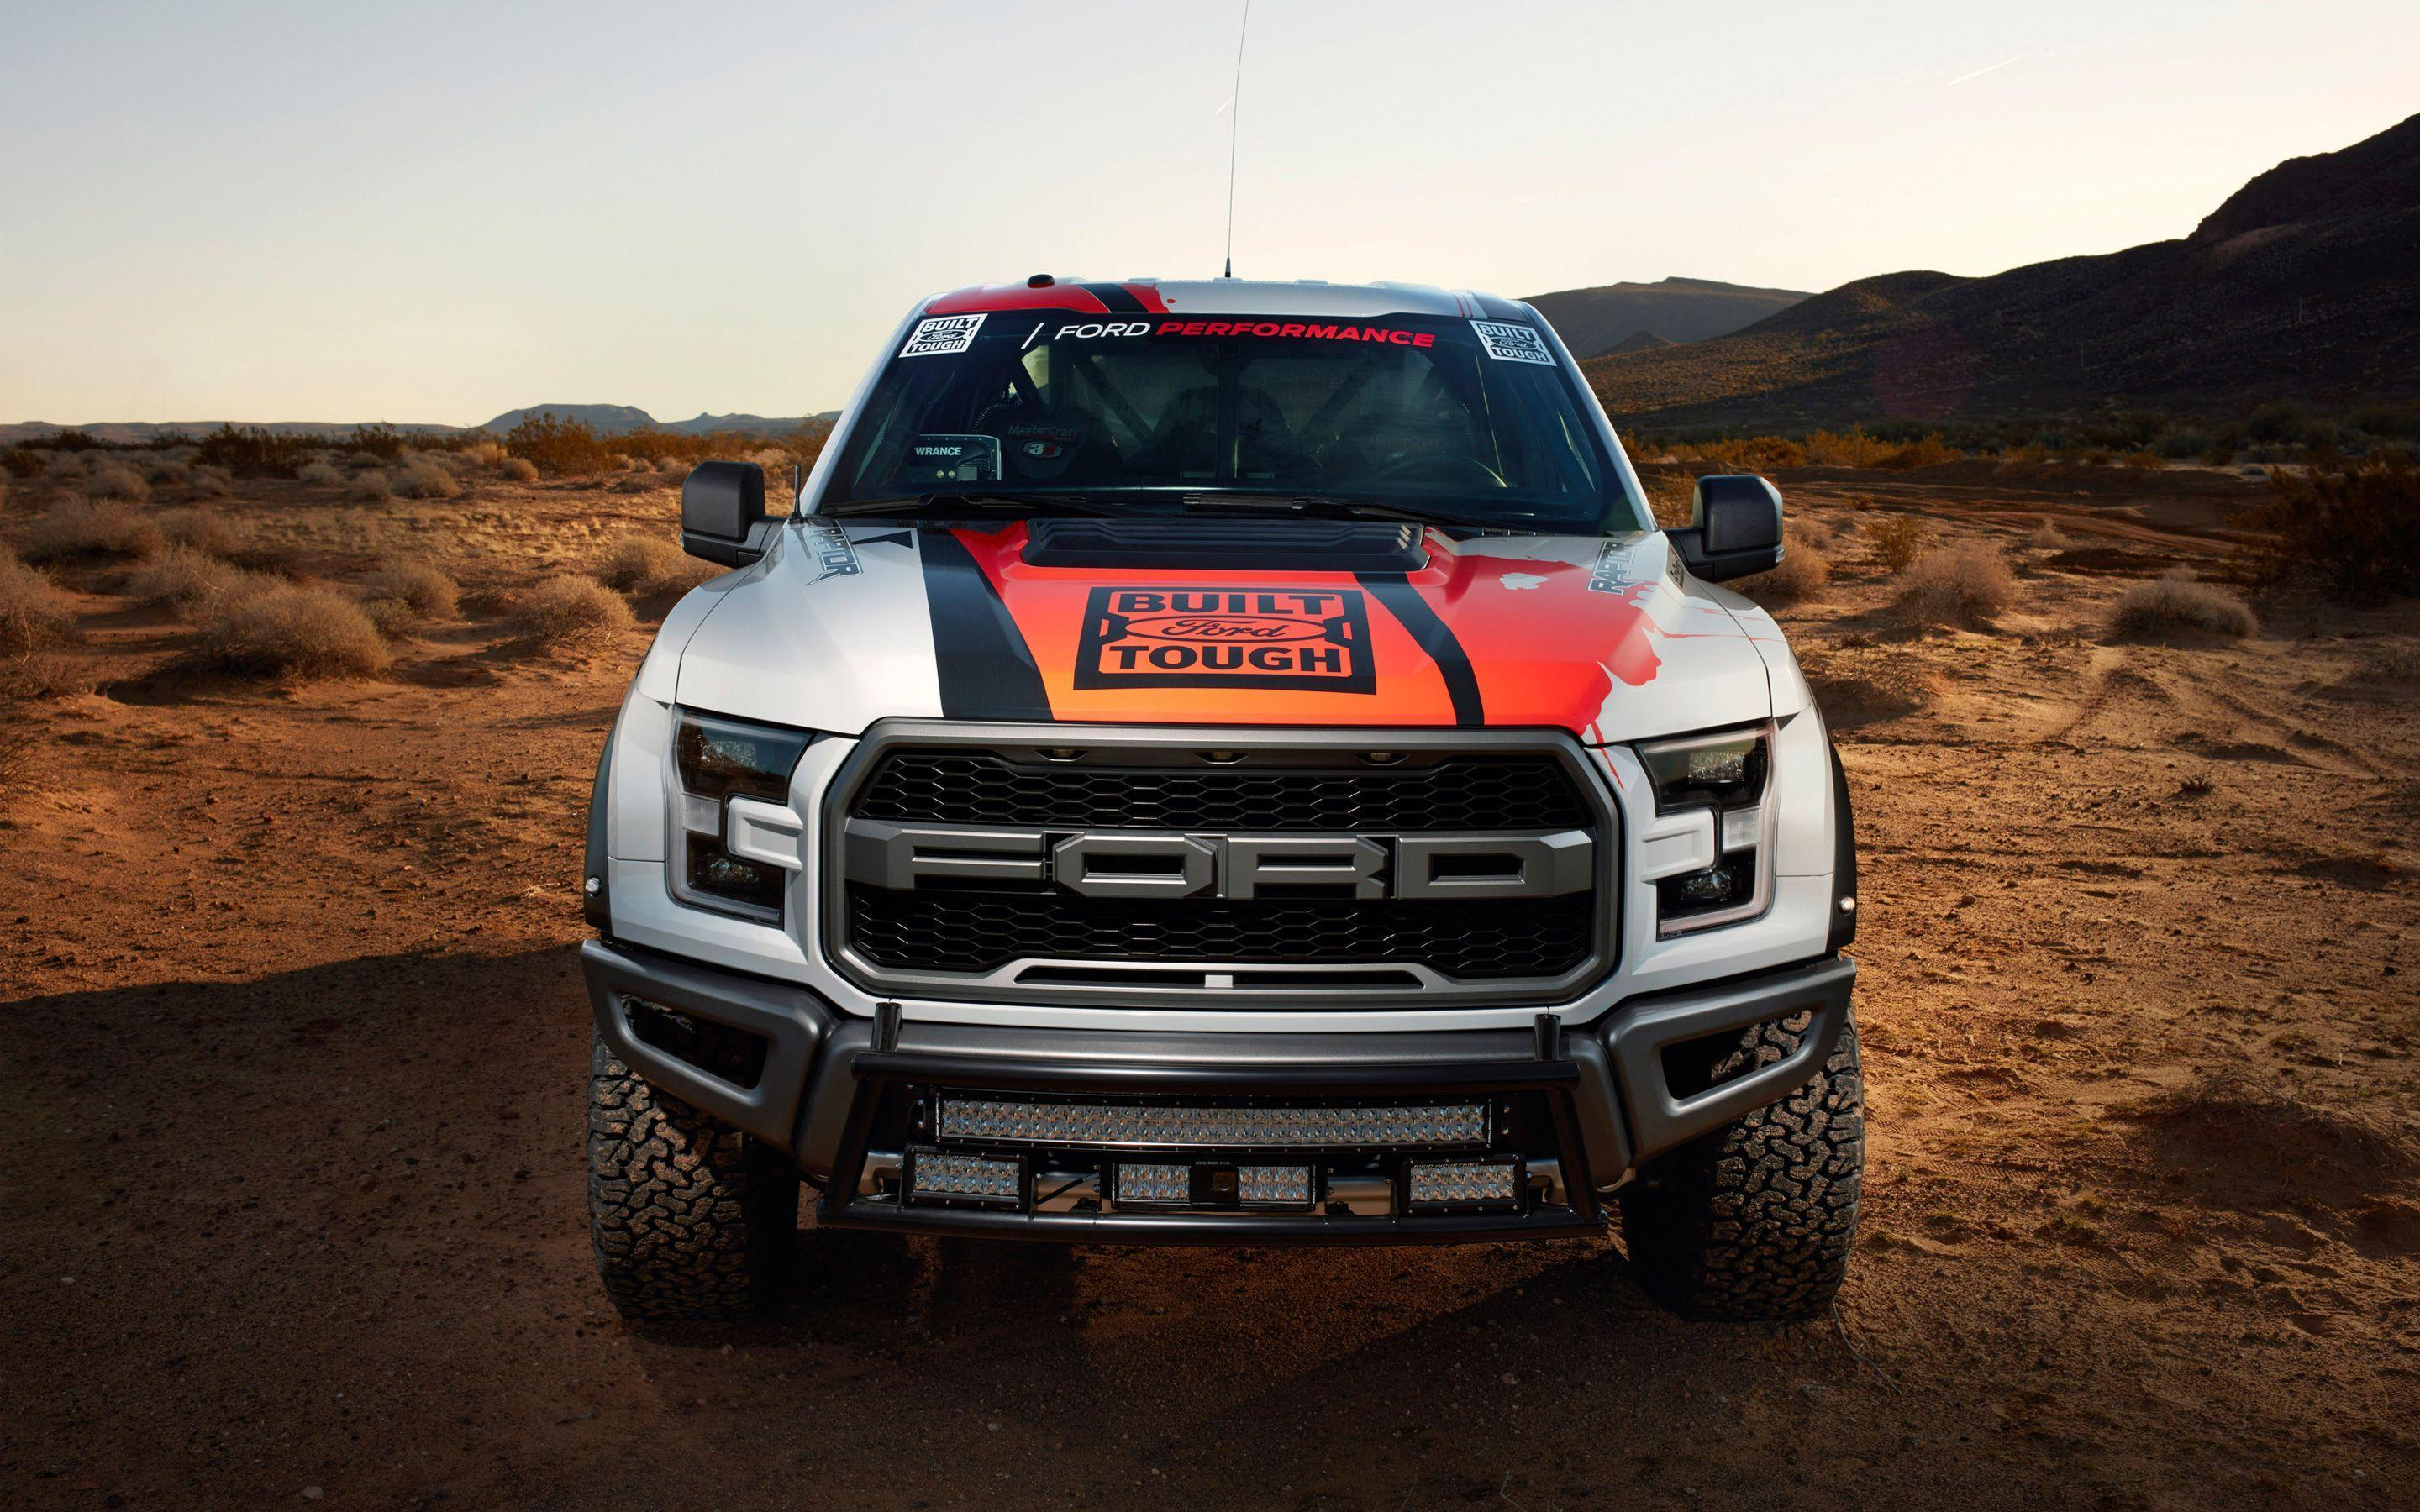 Ford Raptor Wallpapers Top Free Ford Raptor Backgrounds Wallpaperaccess